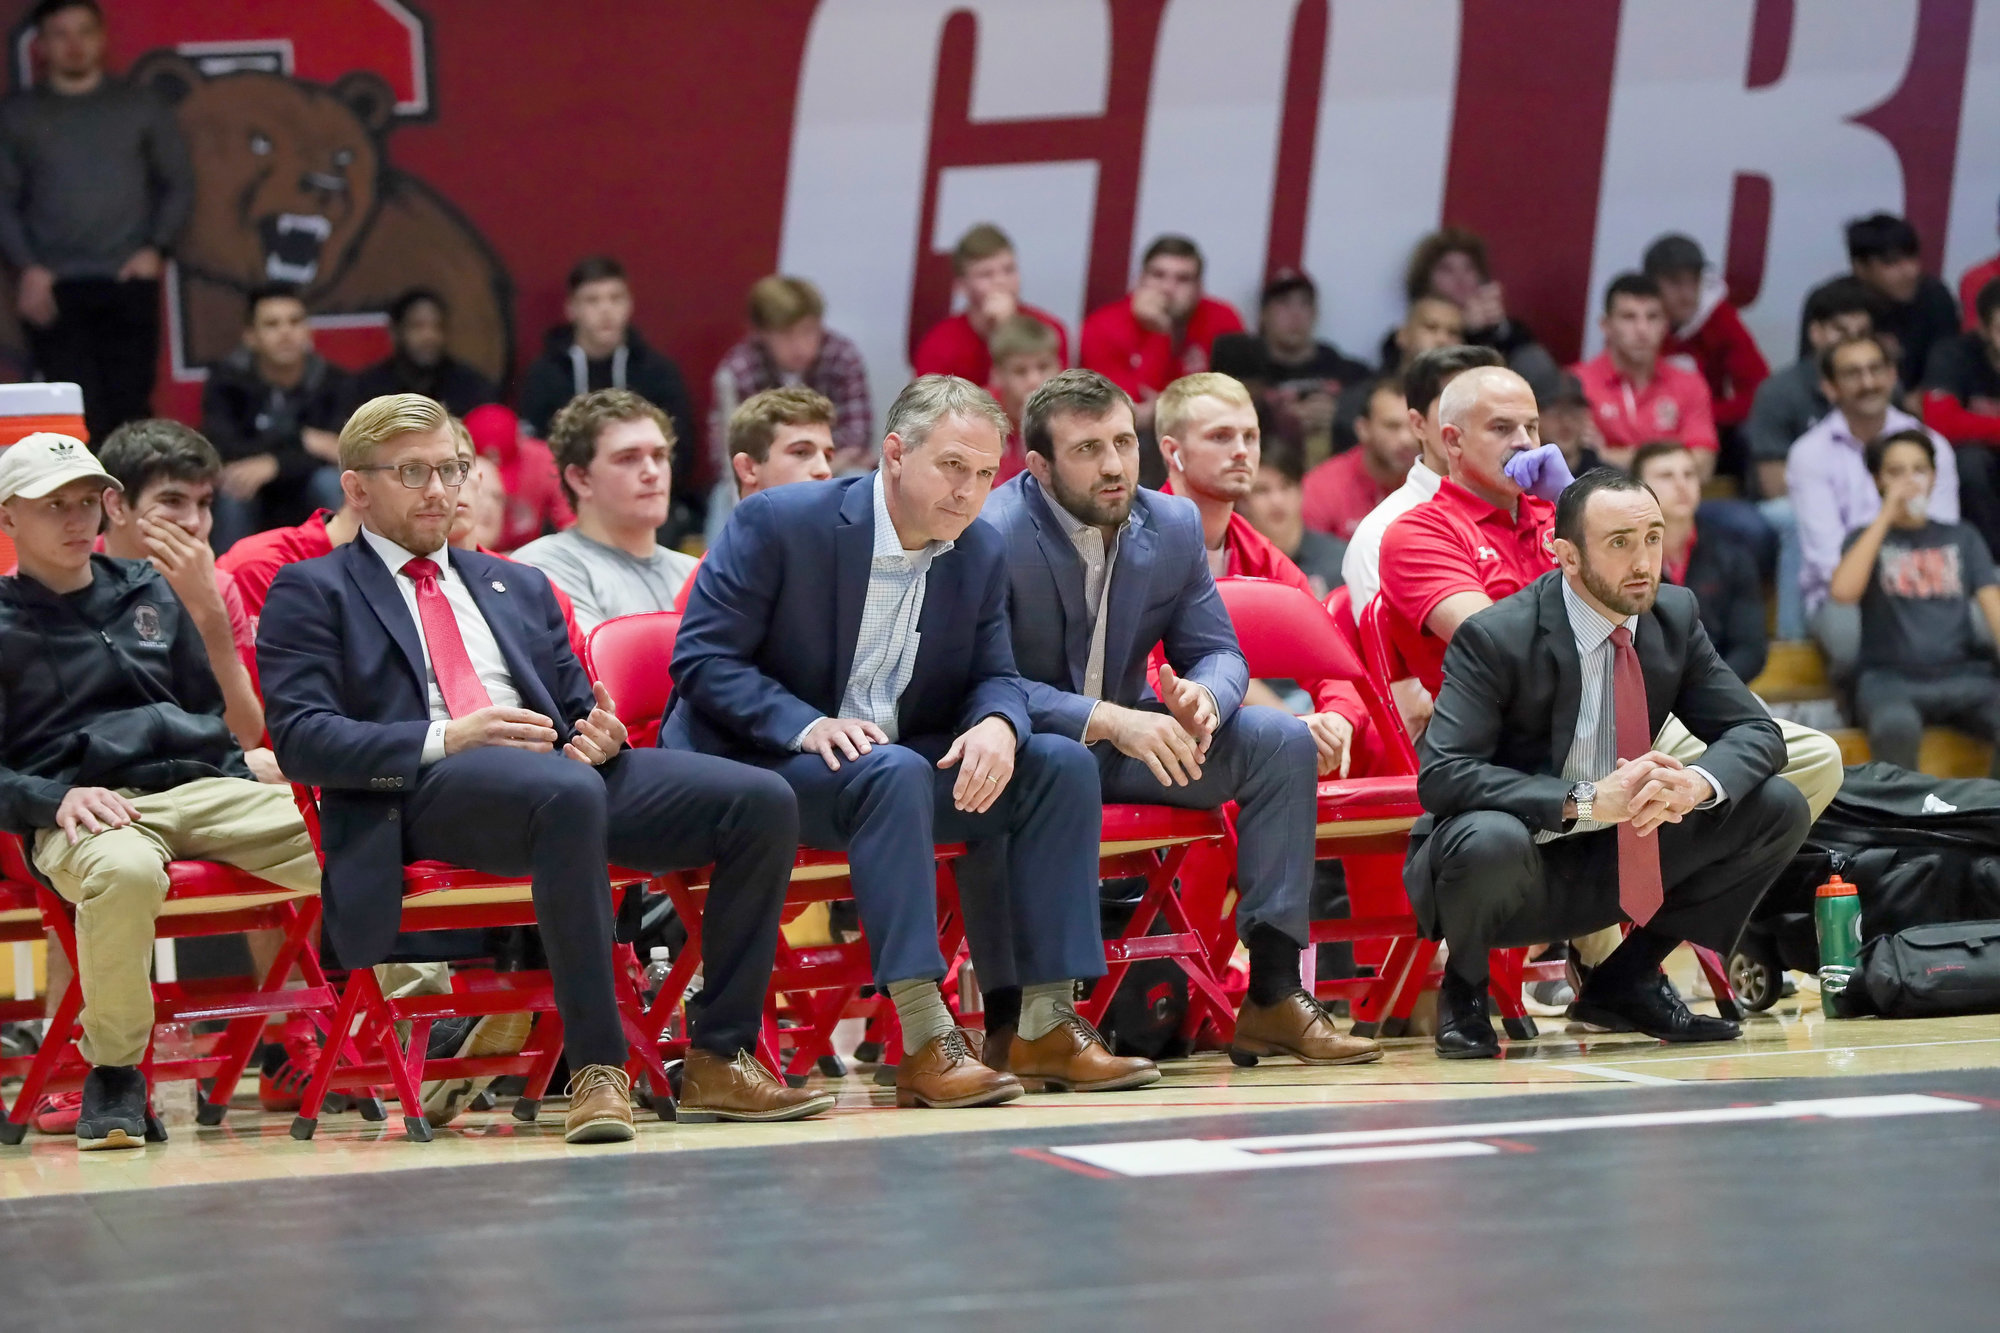 Cornell wrestling coaches (from left to right): Kyle Dake, Rob Koll, Gabe Dean and Mike Grey observe a match at home. Cornell qualified eight wrestlers for nationals this year, their most since 2016.